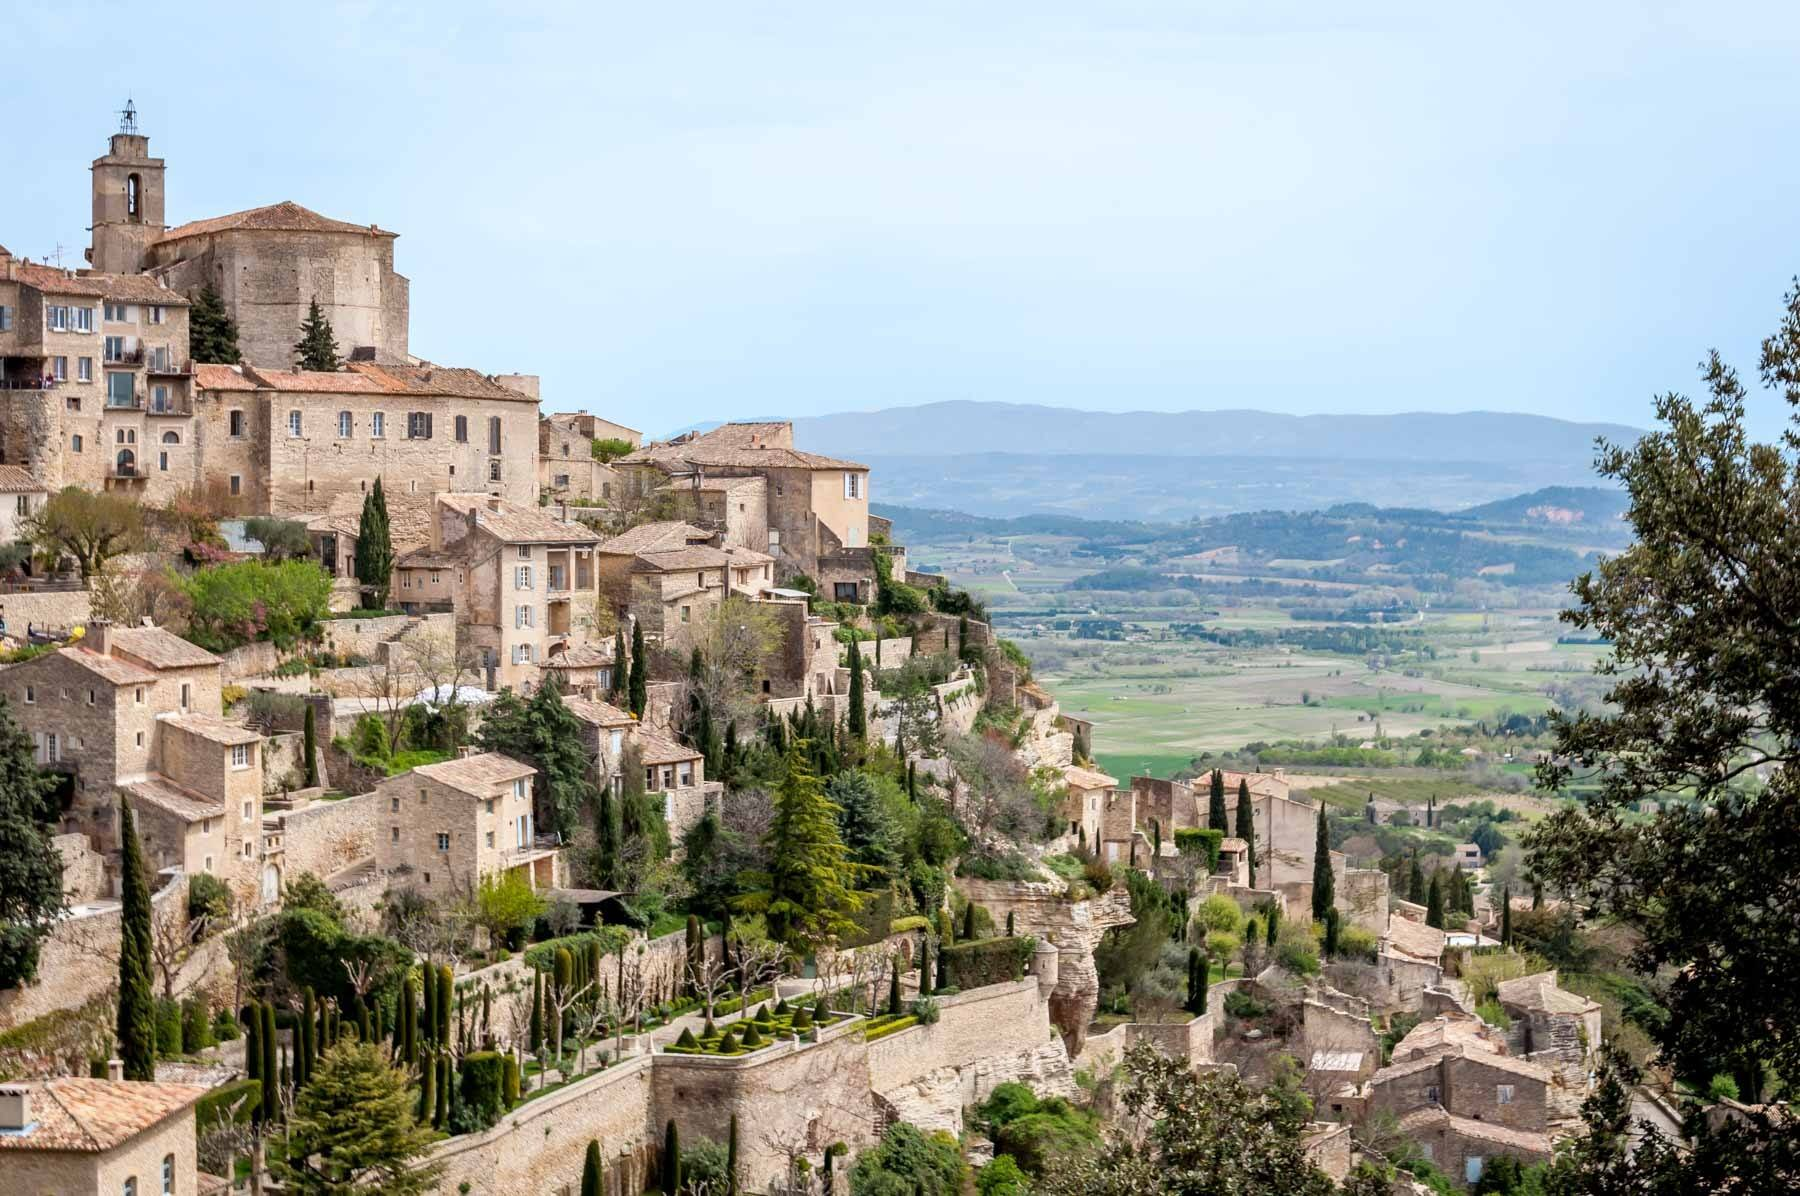 Gordes, France, a town built on a hillside, is a must-see spot on any South of France vacation